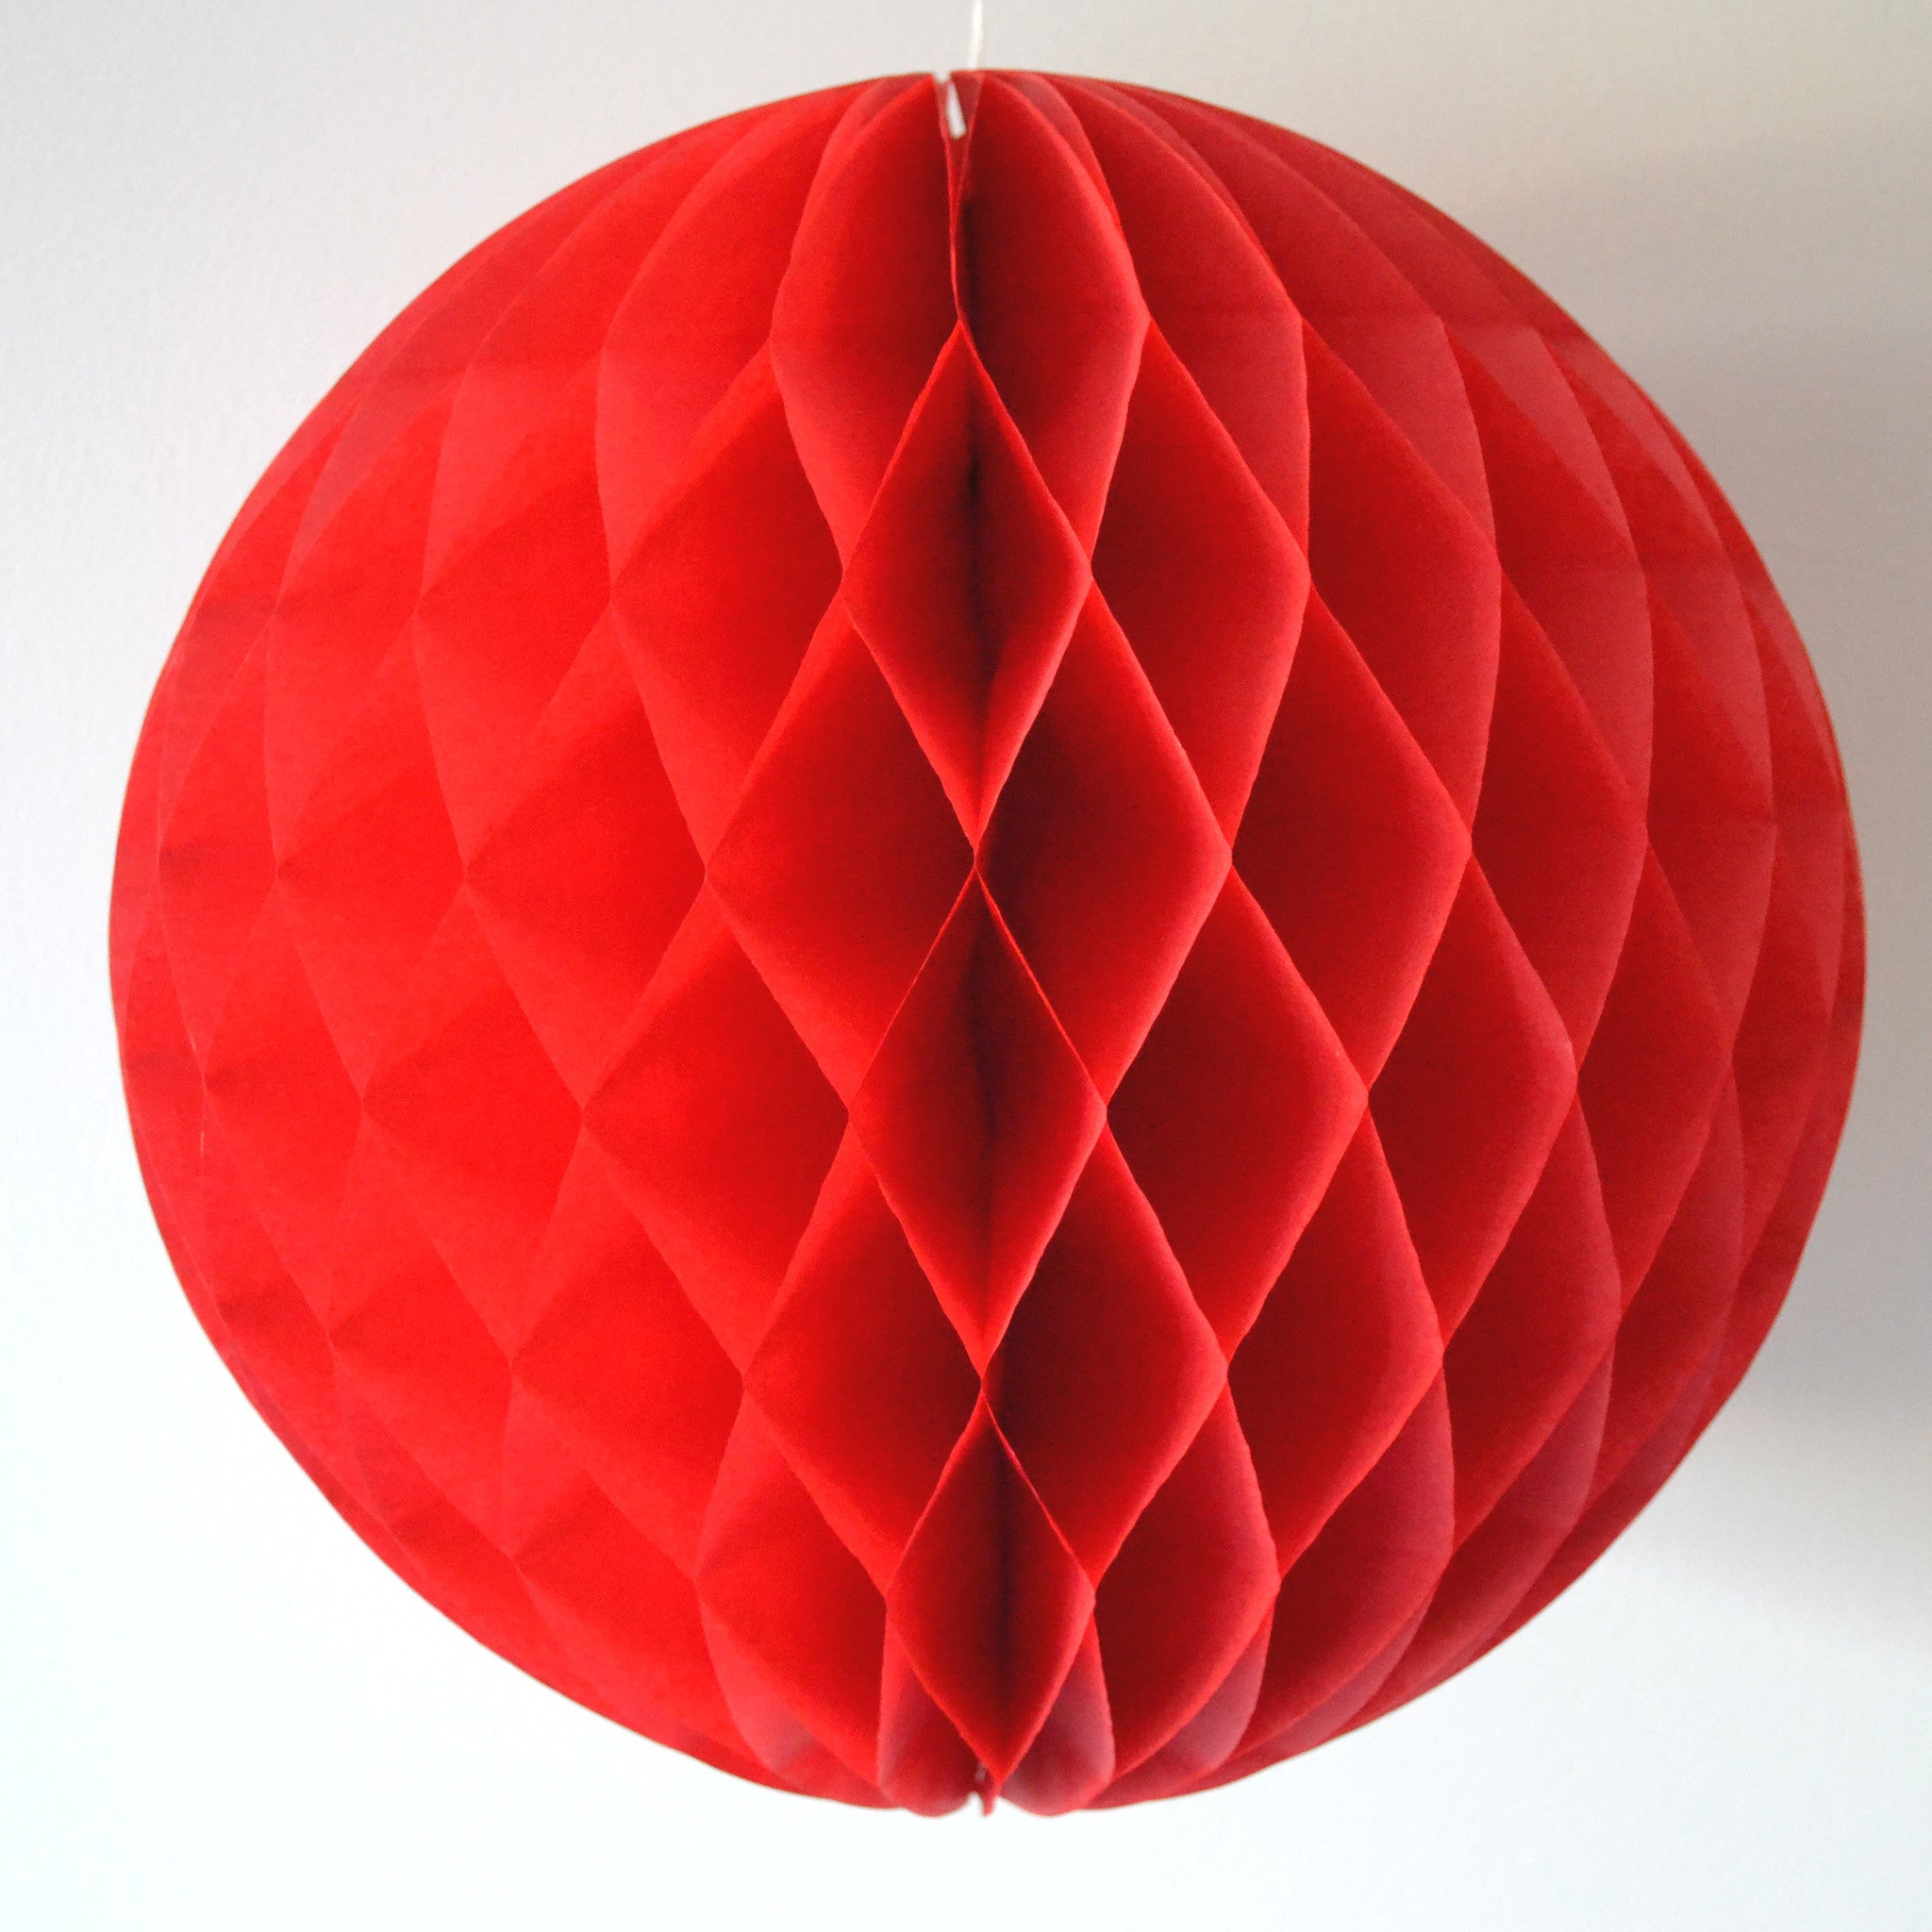 Red Honeycomb Tissue Ball - The Sweet Hostess